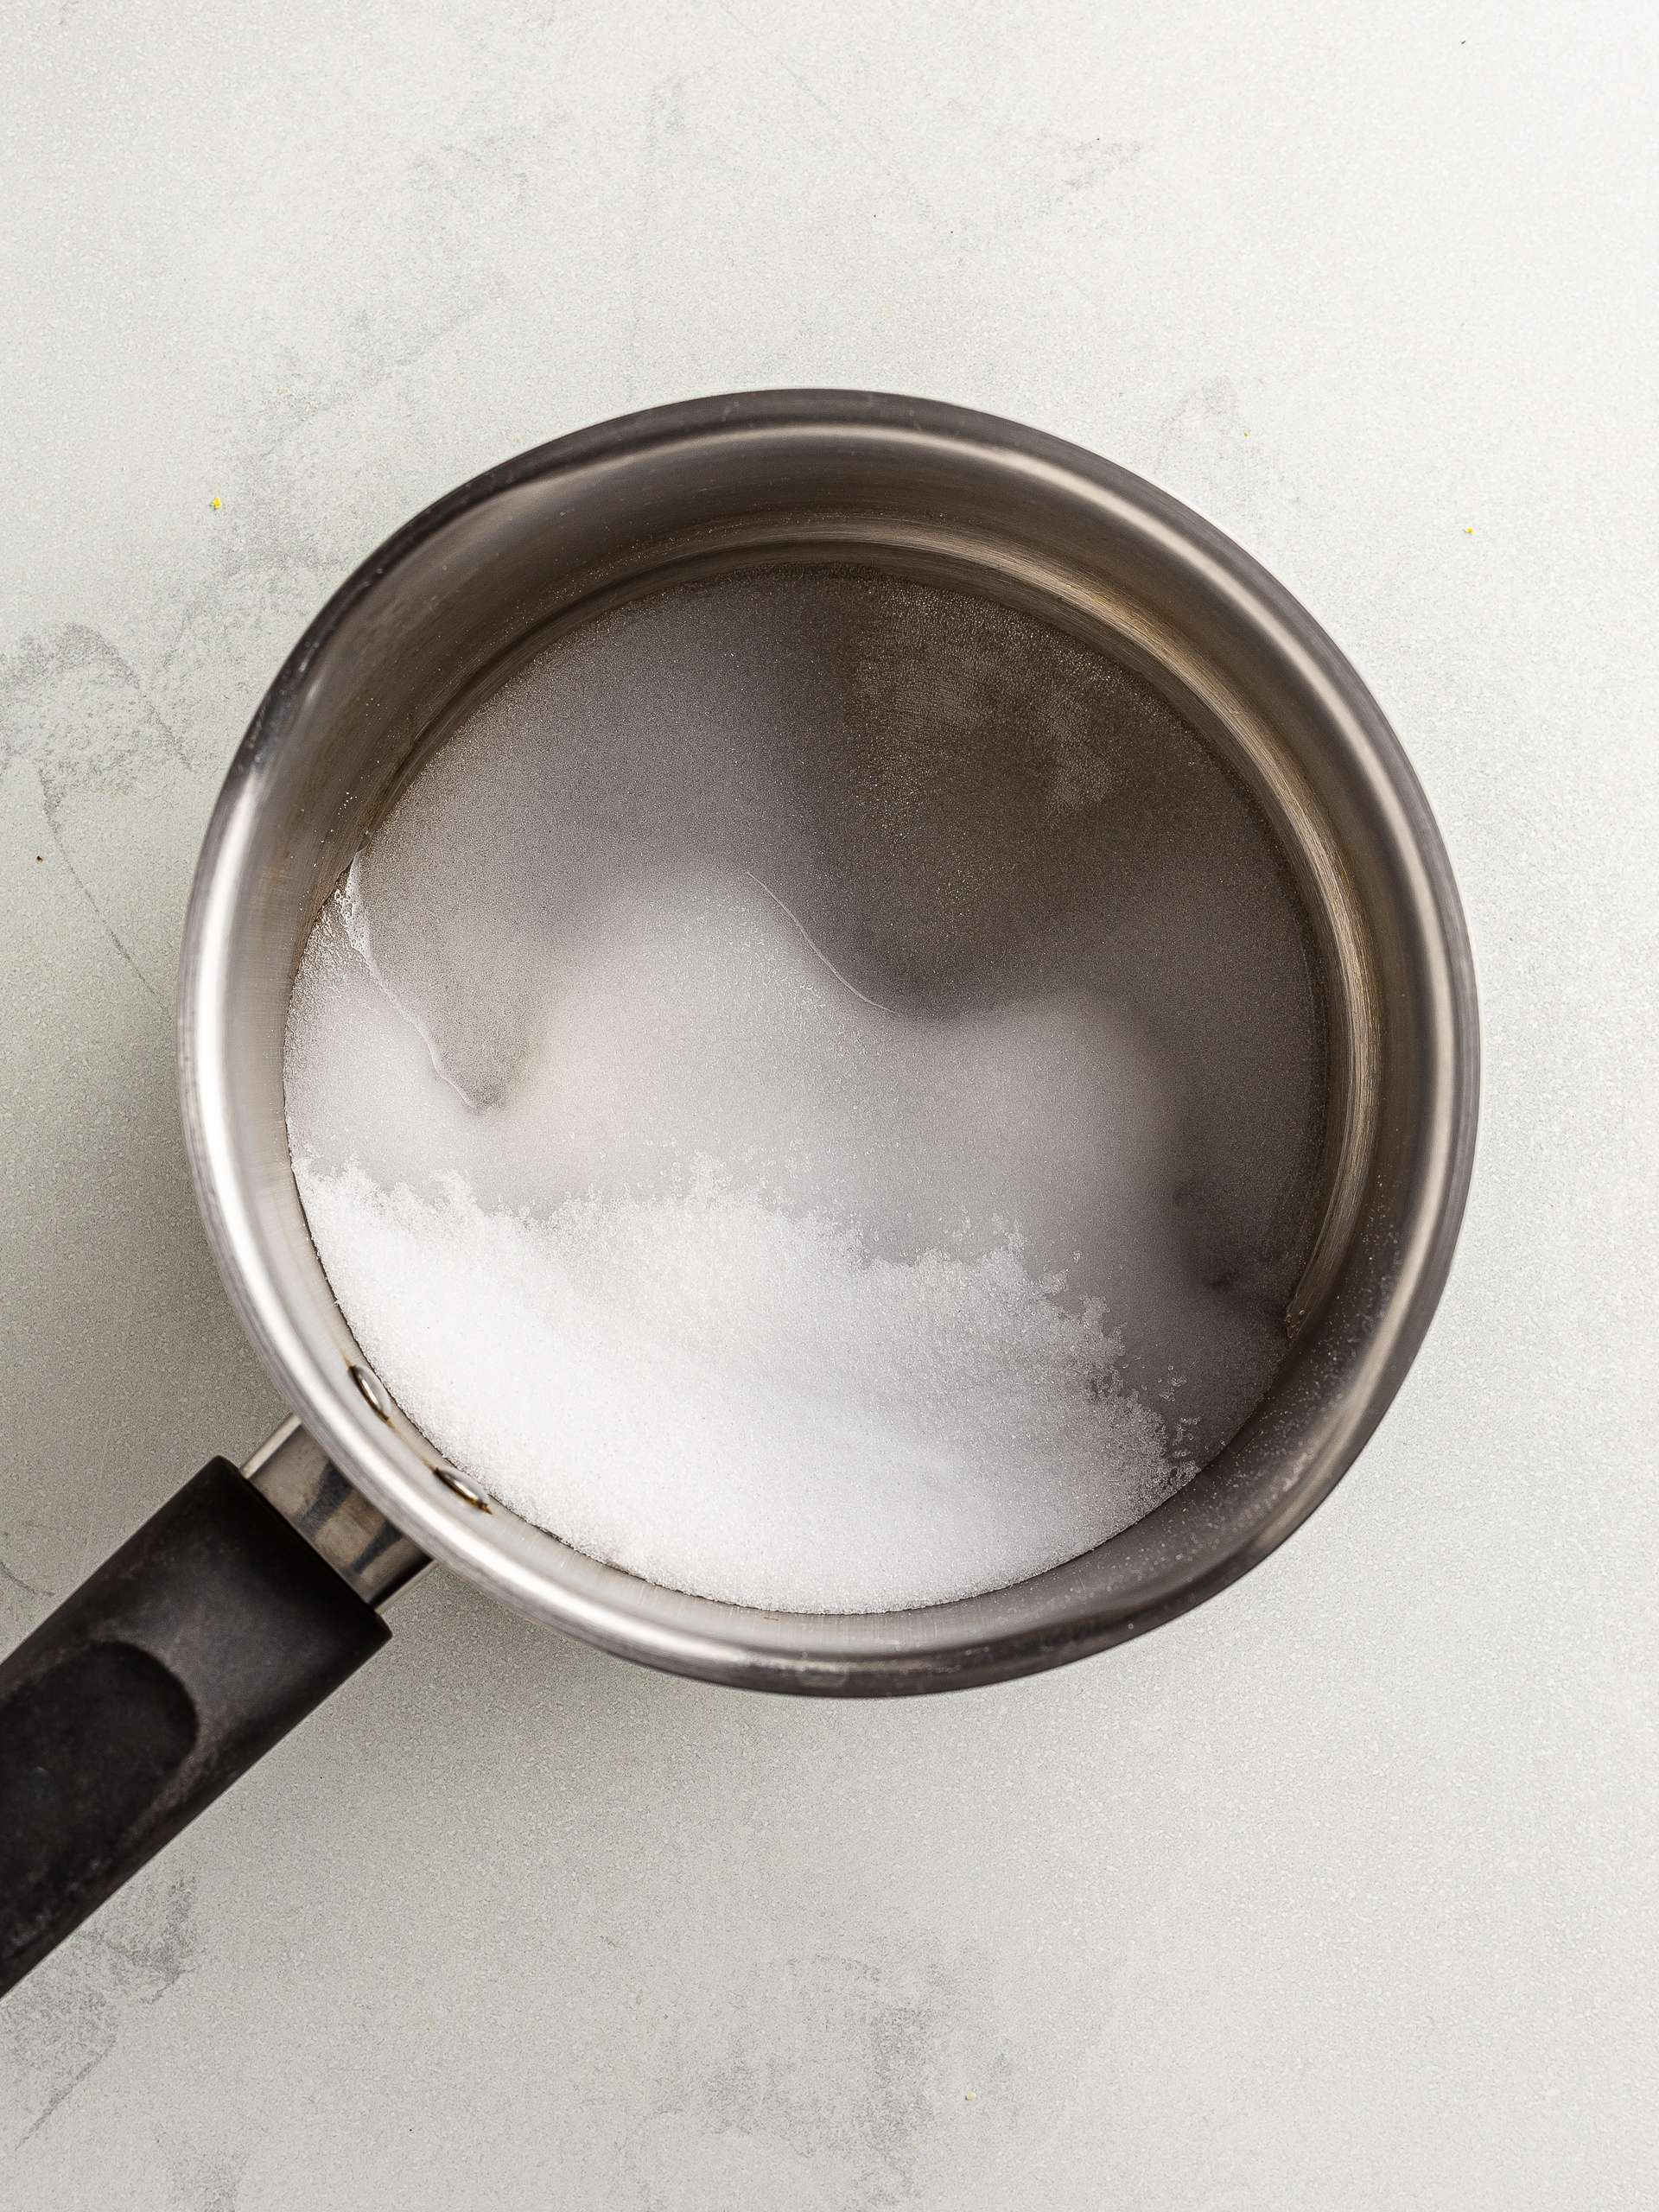 erythritol and water in a pot